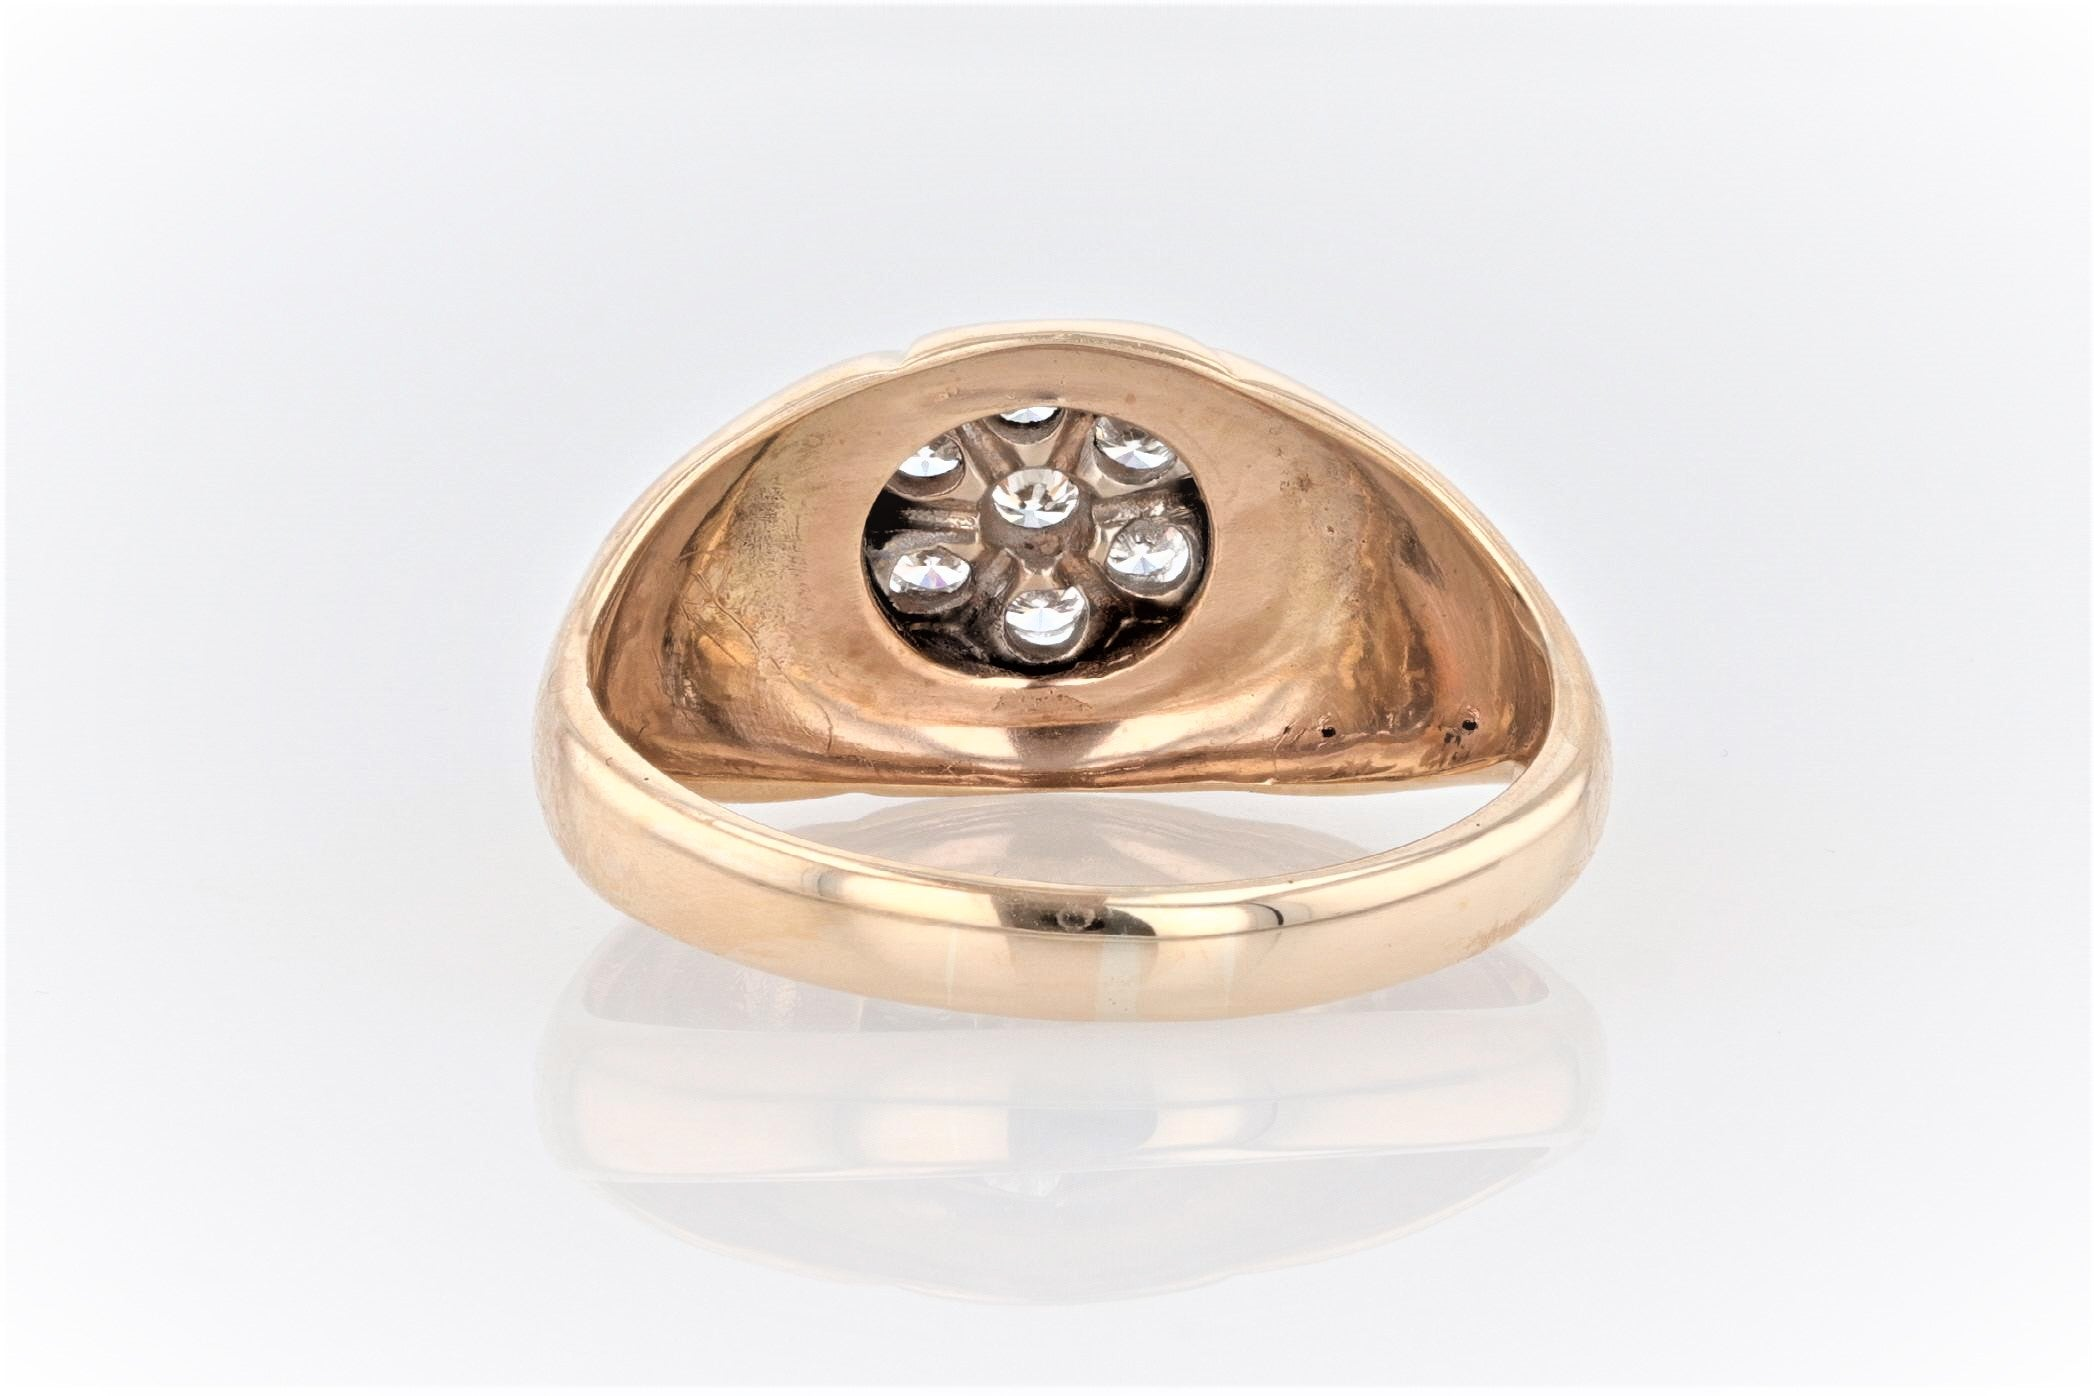 10K Men's Yellow Gold (Stamped) Dress Ring